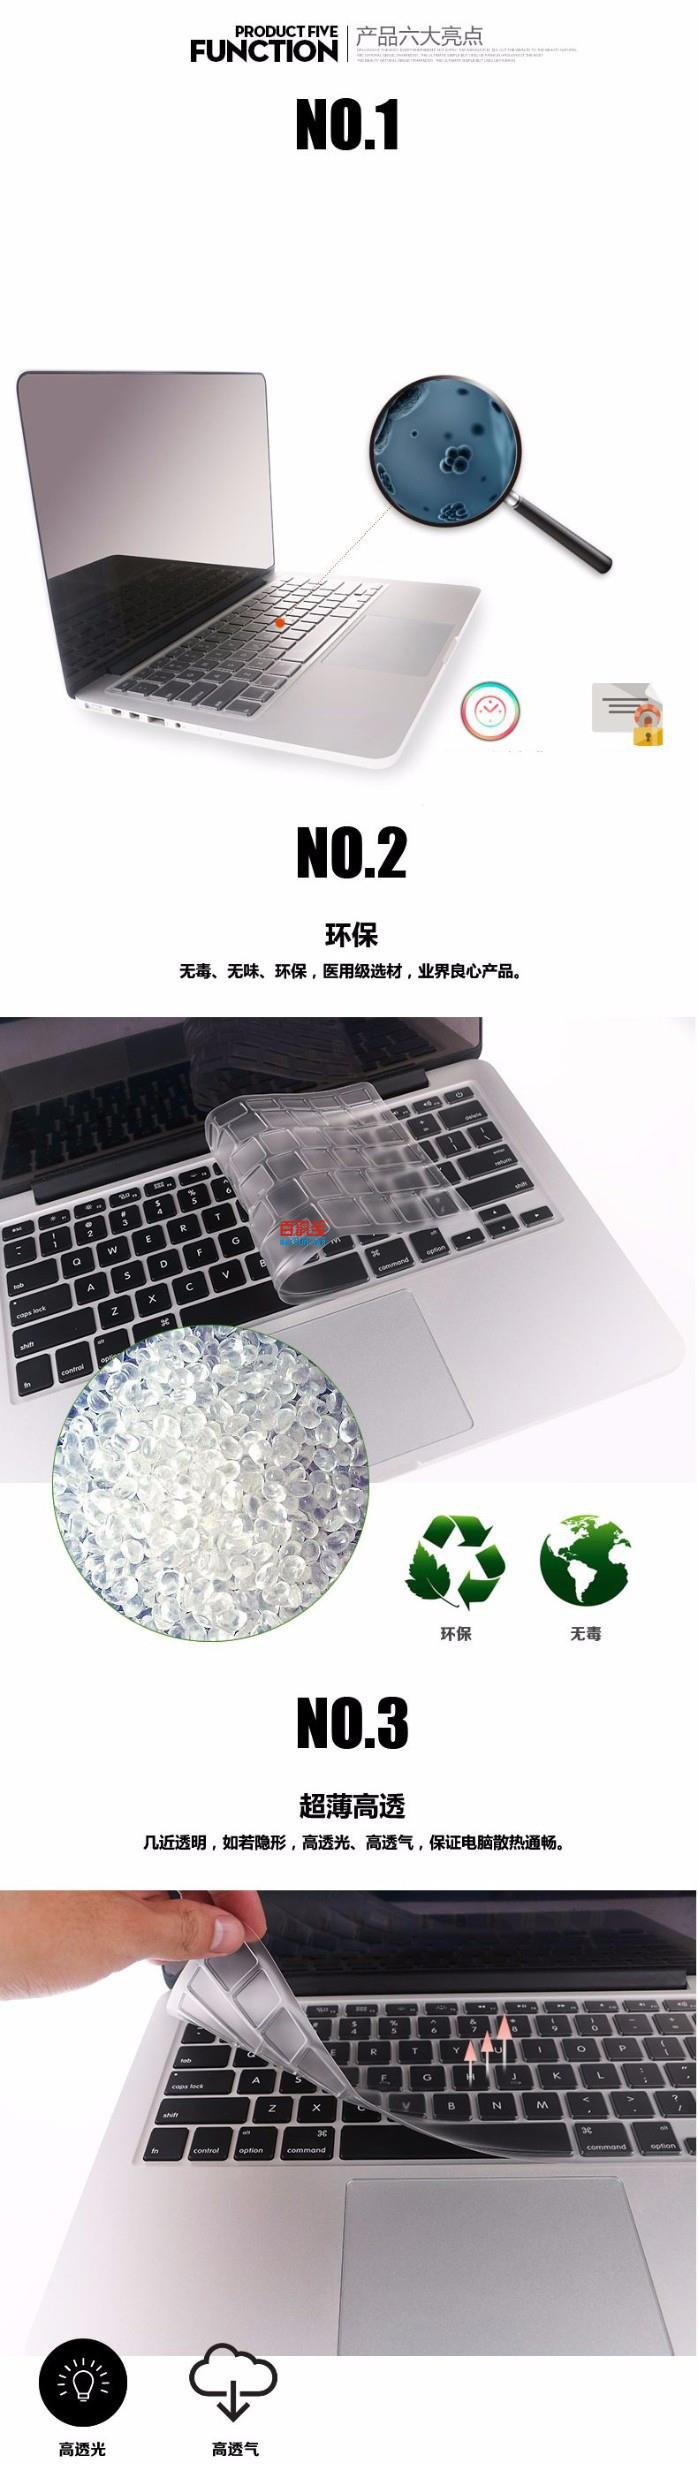 US $6 5 |Laptop Clear Tpu Keyboard Cover For Sager NP7850 (Clevo N850HP6  N850EP6) NP6853(N850EK1) NP5856 (N850EJ1) NP4850 (N850EL) N850HJ-in  Keyboard